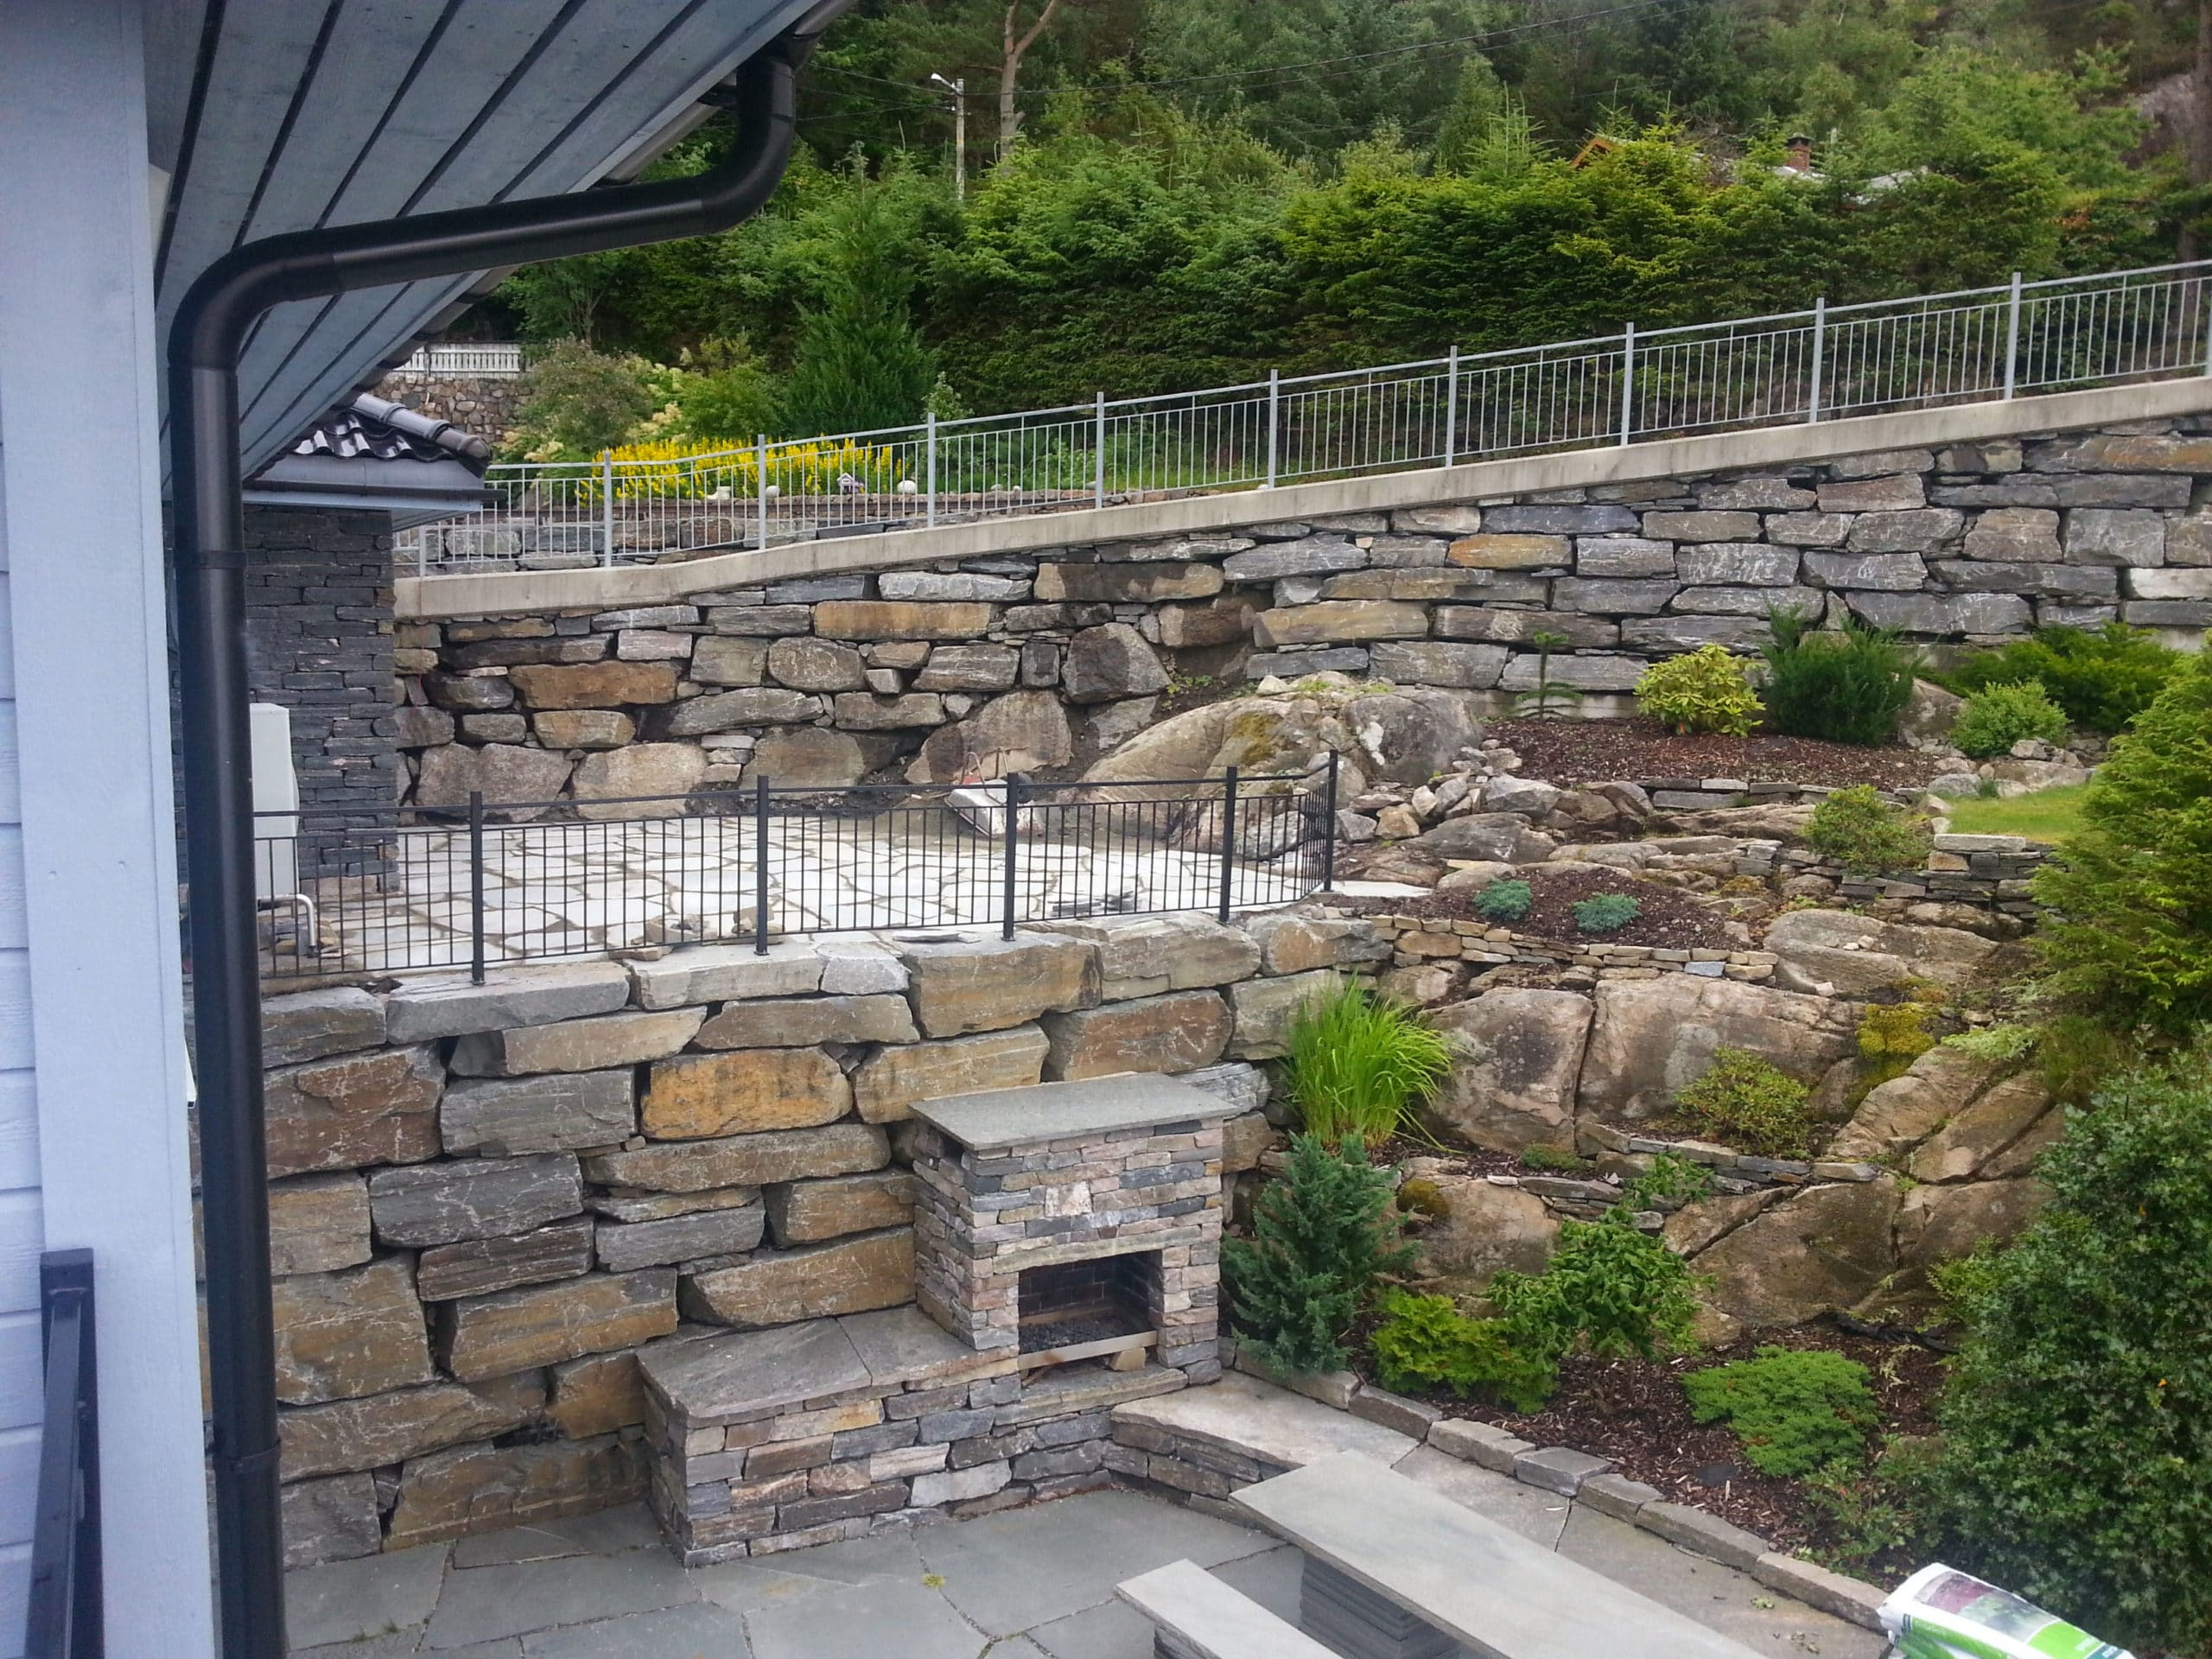 Fireplace or barbeque grill